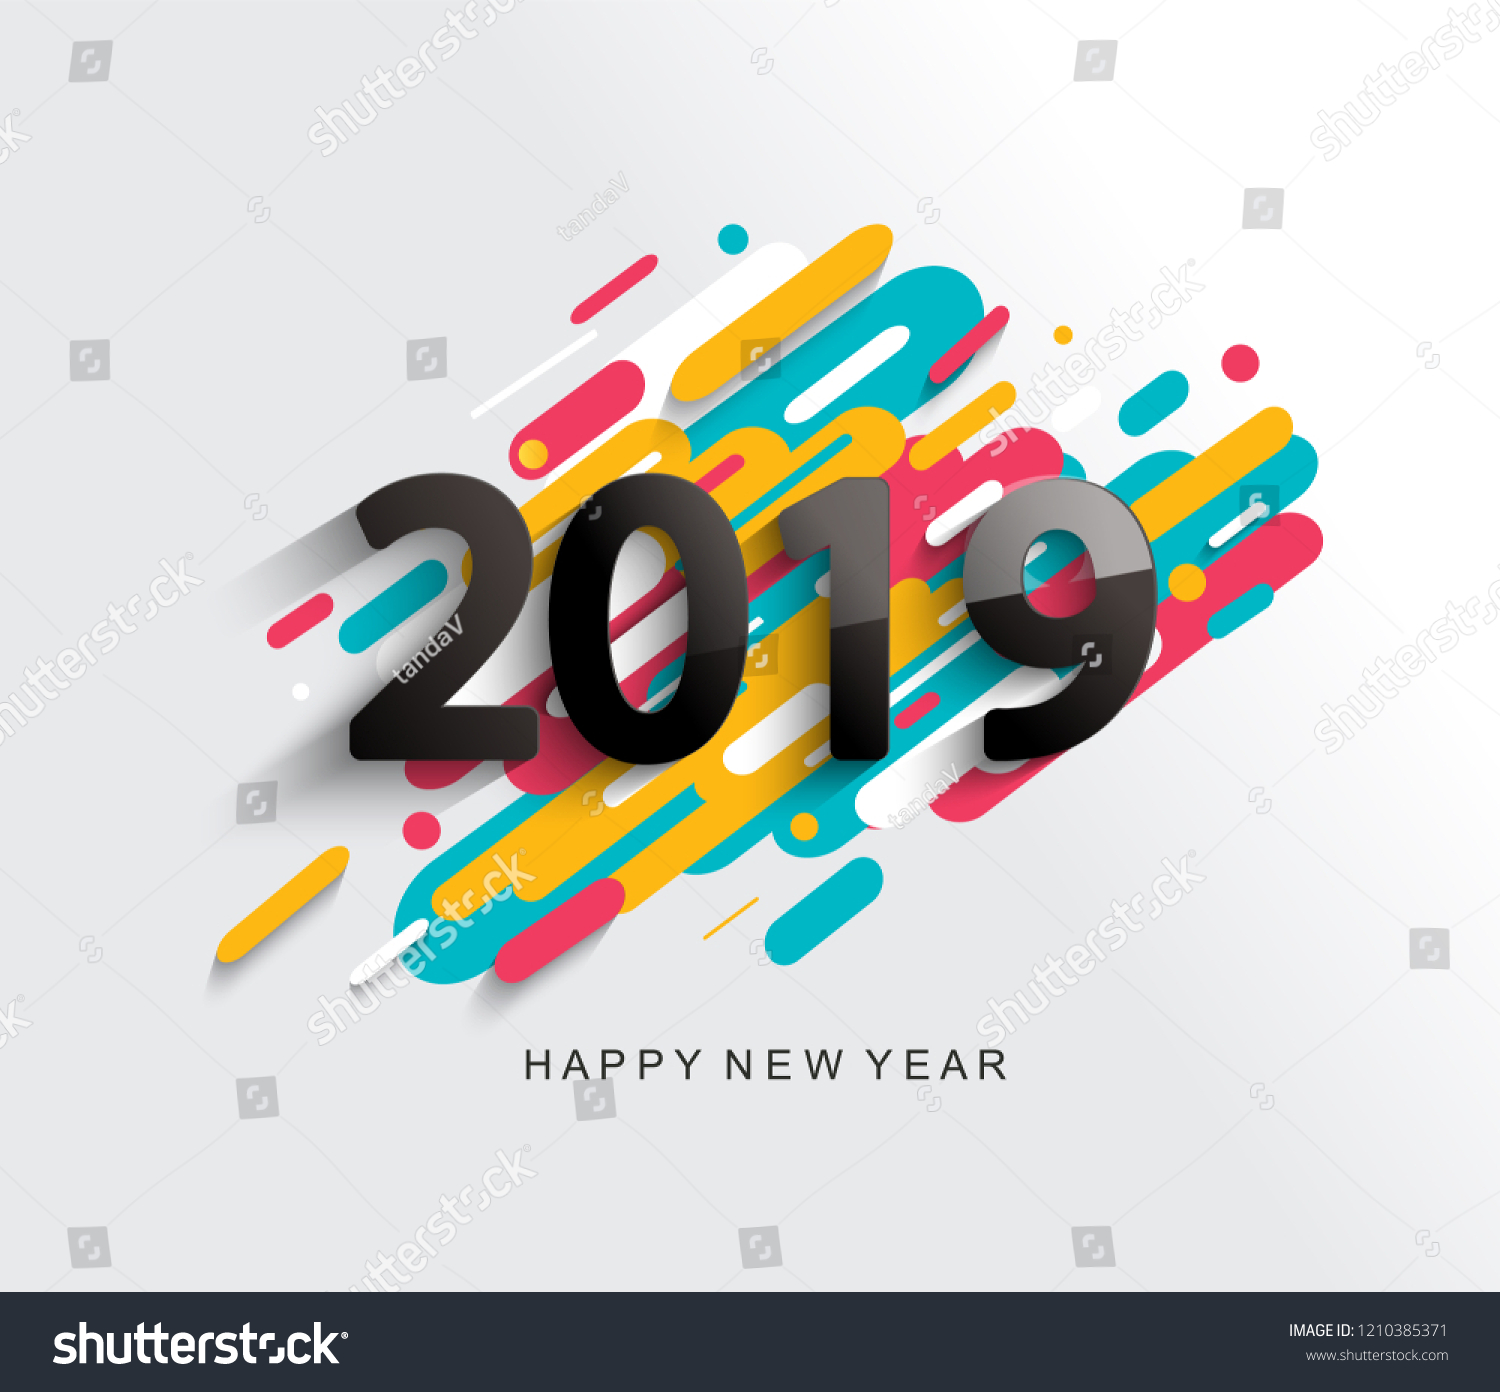 creative happy new year 2019 card on modern background for your seasonal holidays flyers greetings